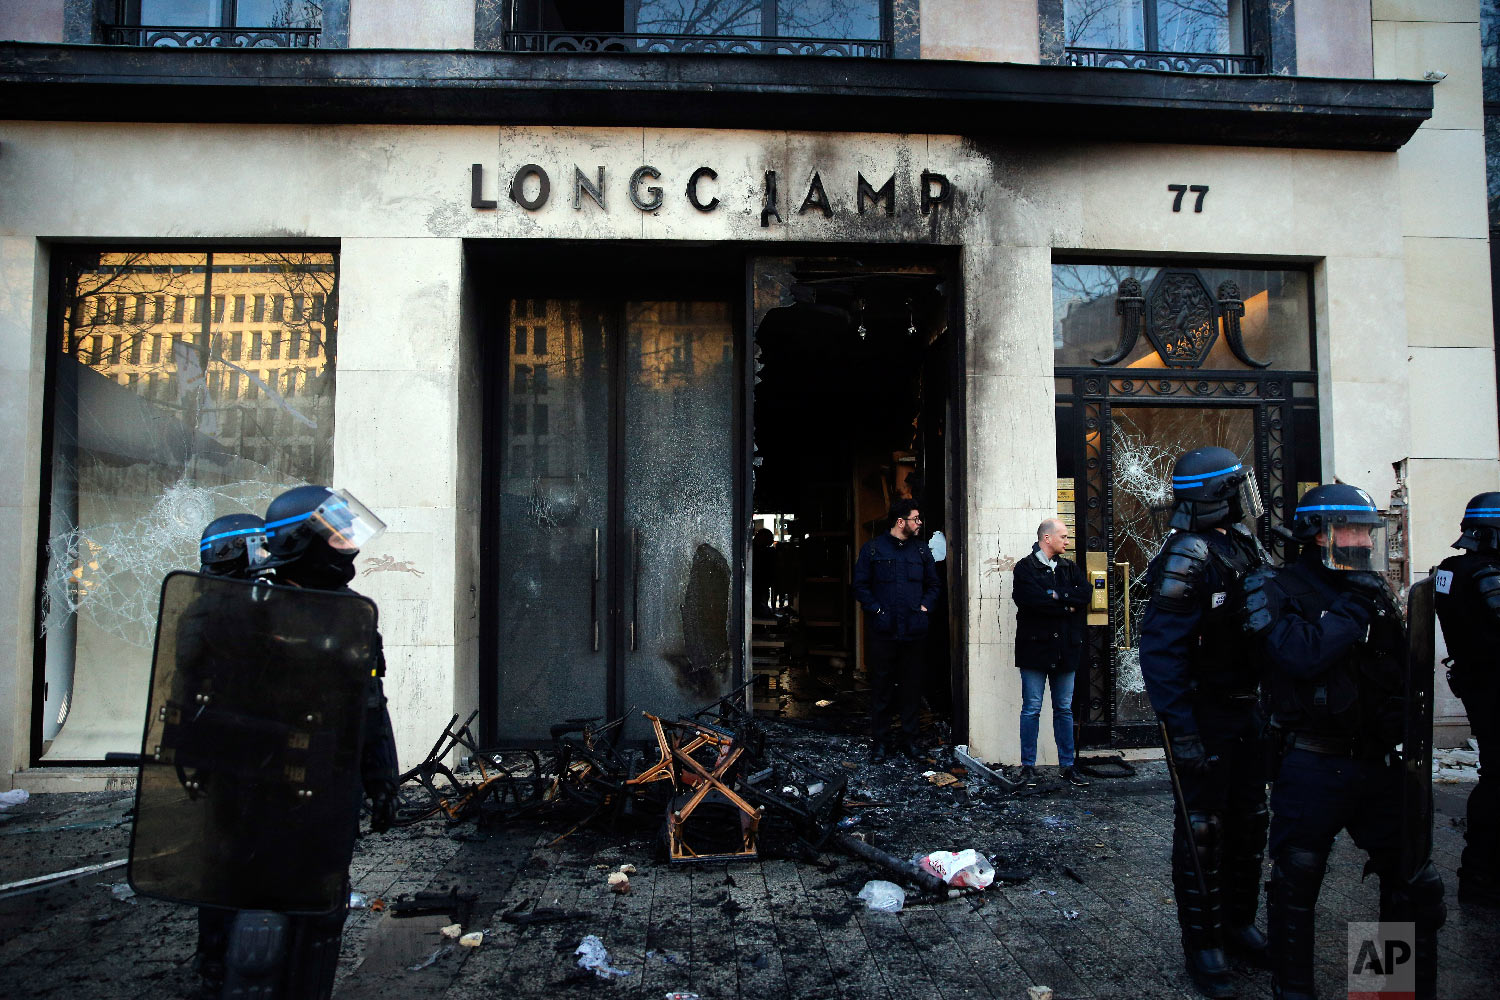 Riot policemen stand in front a burned store after a demonstration Saturday, March 16, 2019 in Paris. (AP Photo/Christophe Ena)